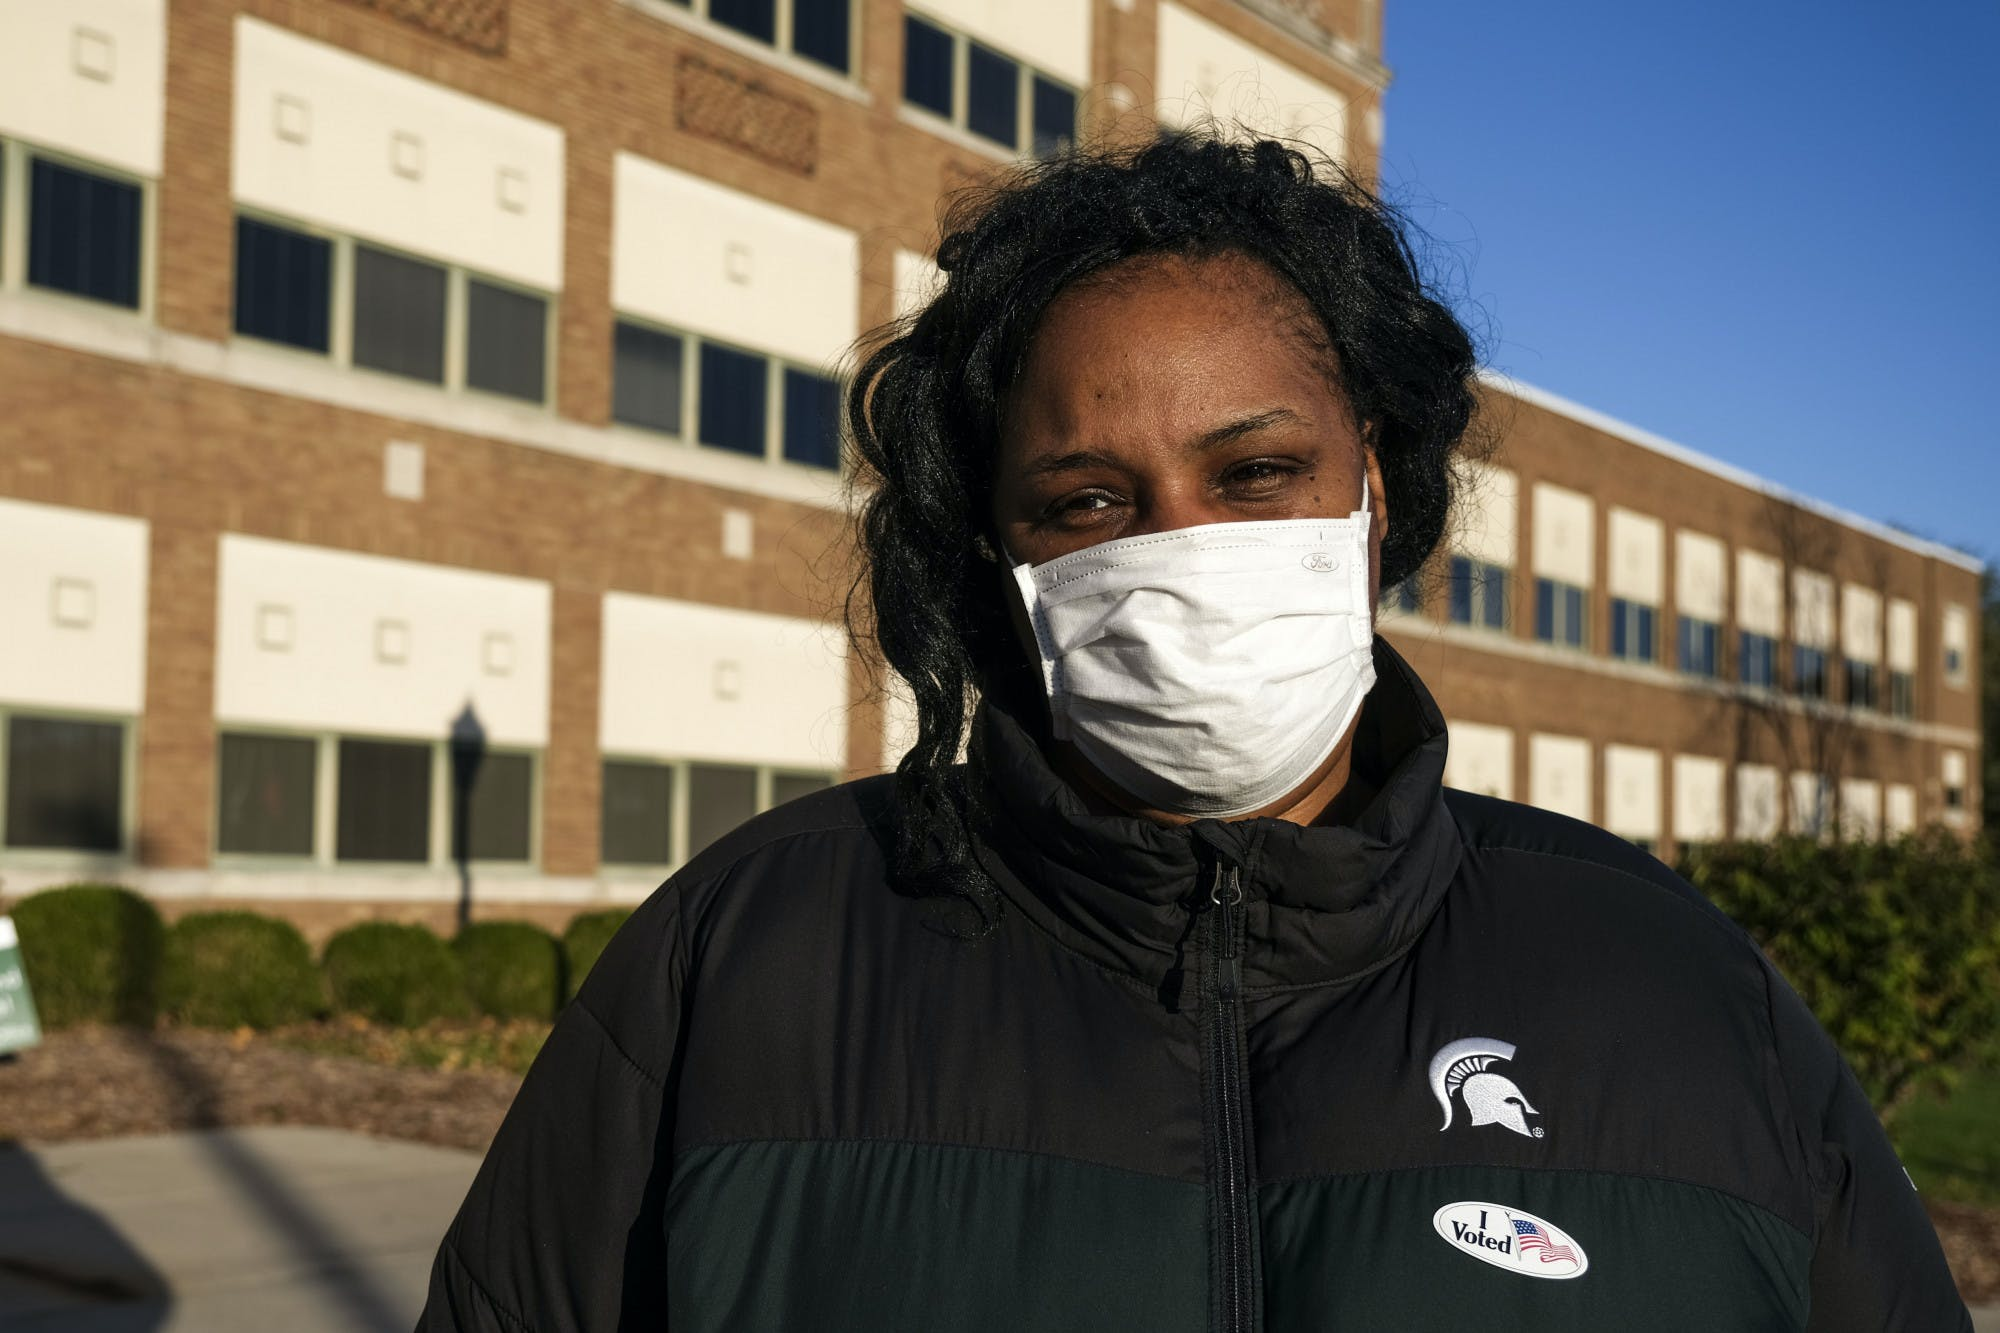 A woman wears a face mask and an 'I voted' sticker.